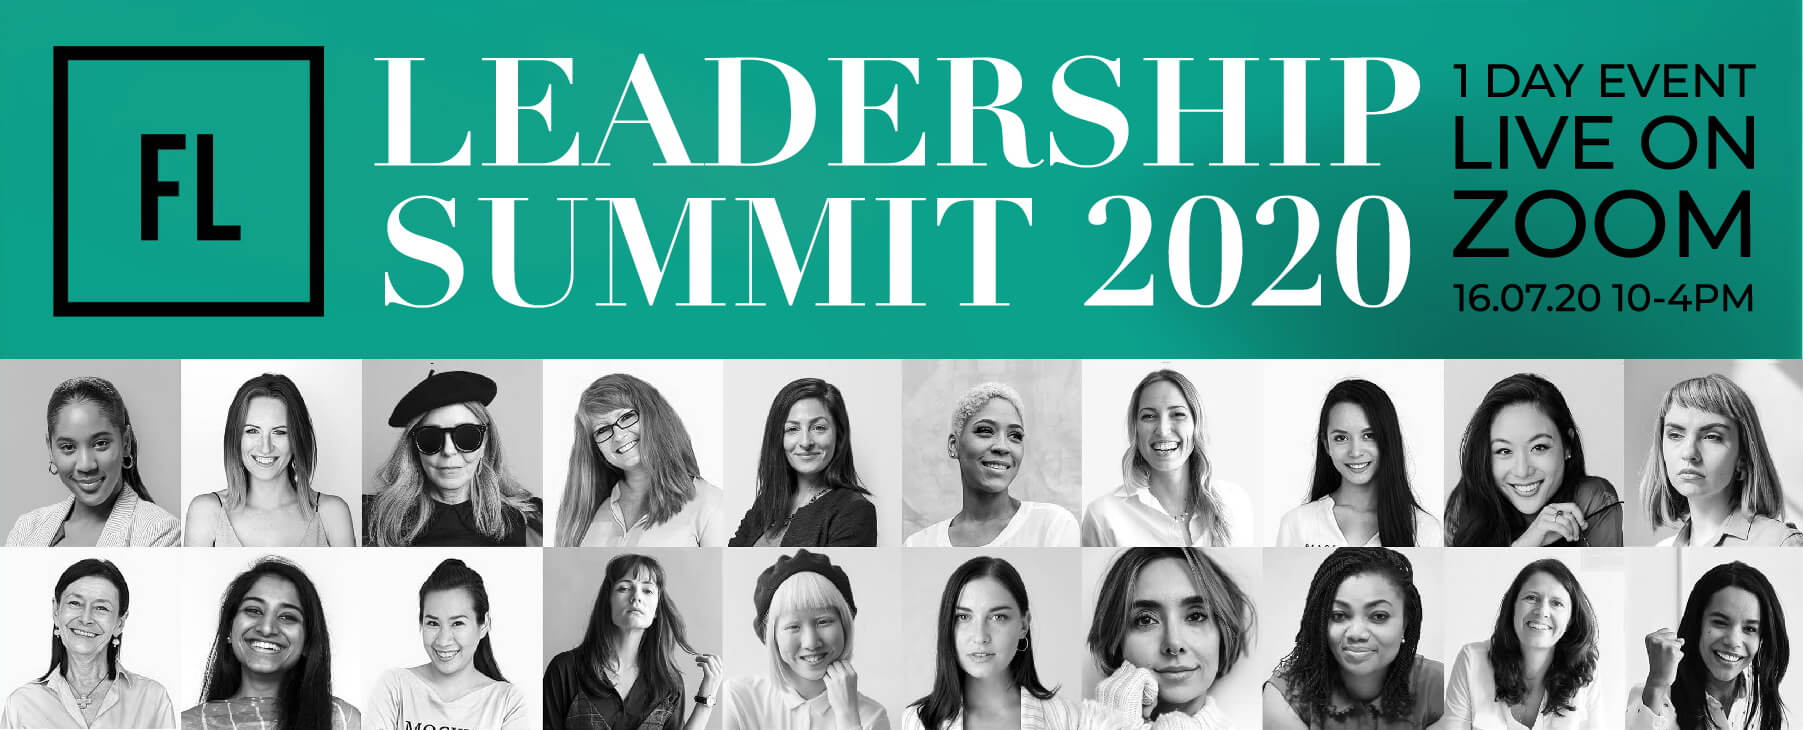 Your voice is needed: The Leadership Summit 2020